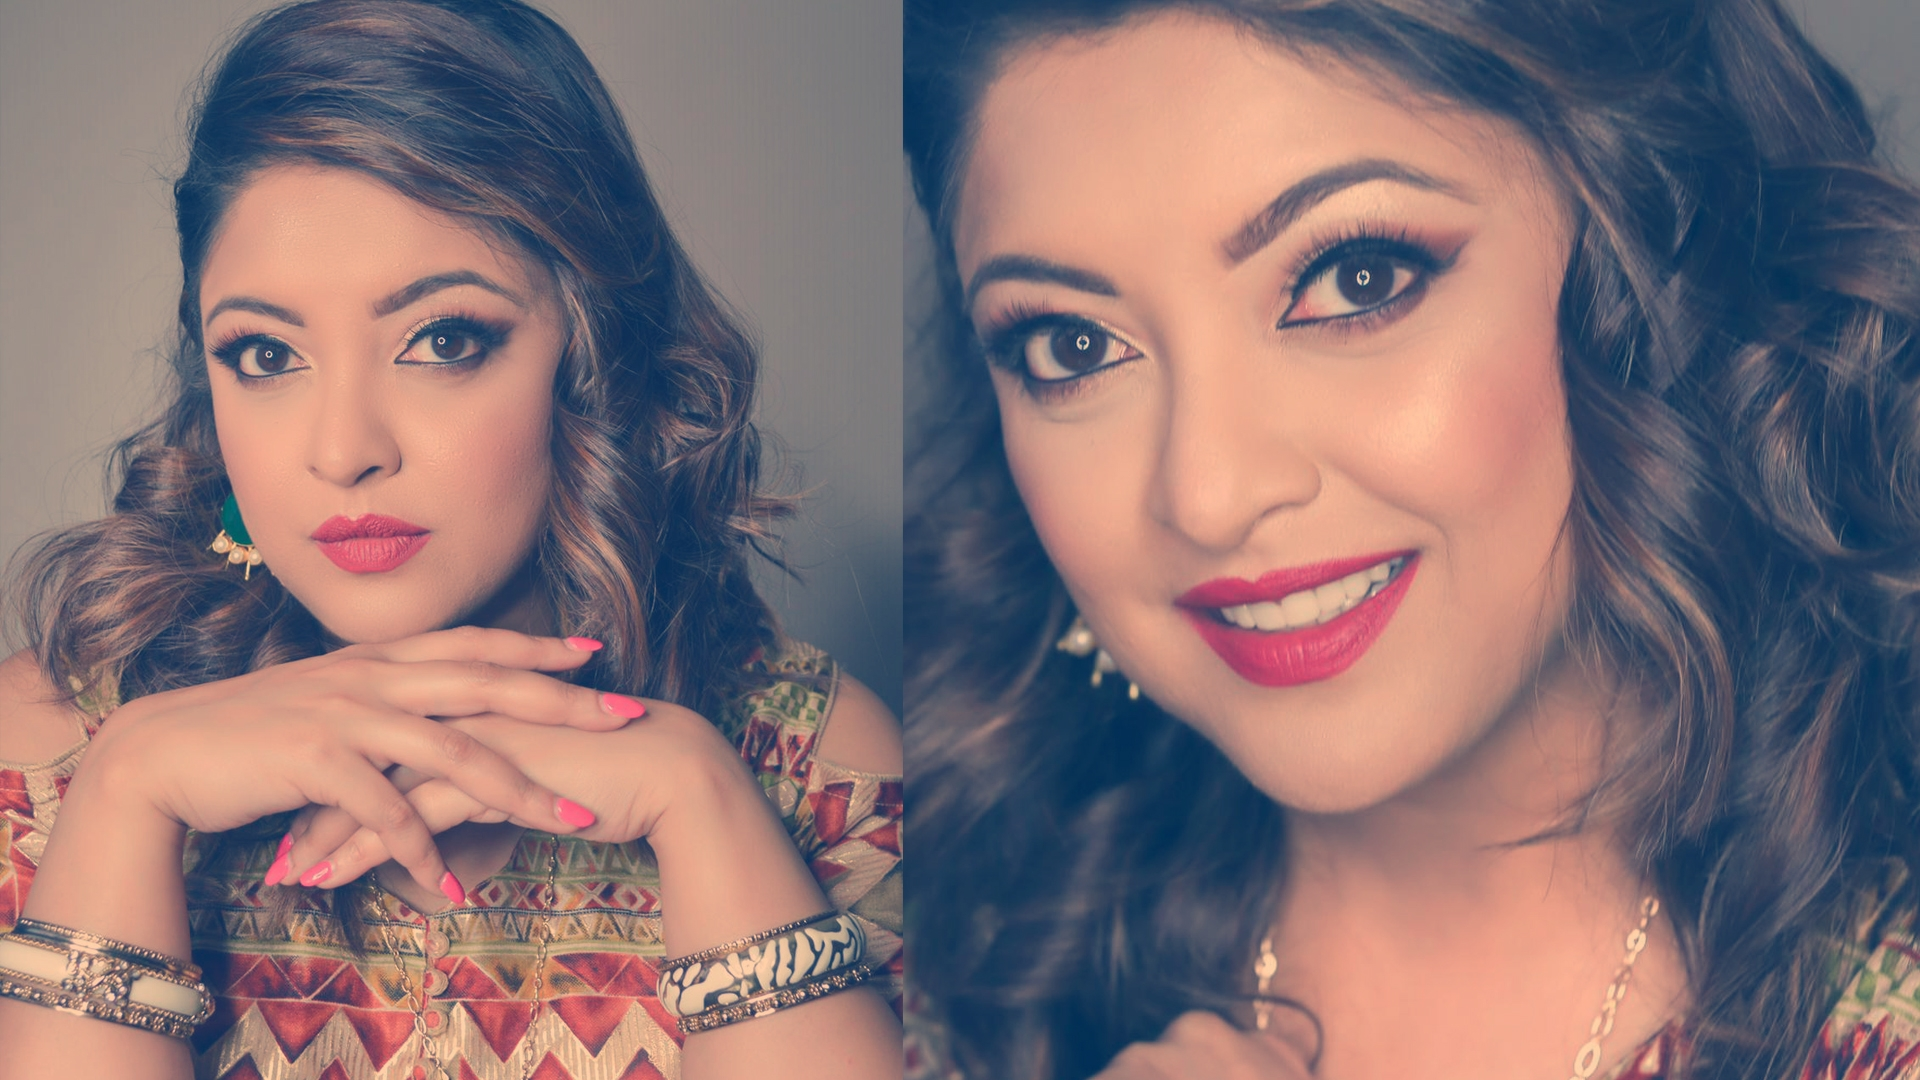 Tanushree Dutta Talks About Her Short Film And Life After #MeToo